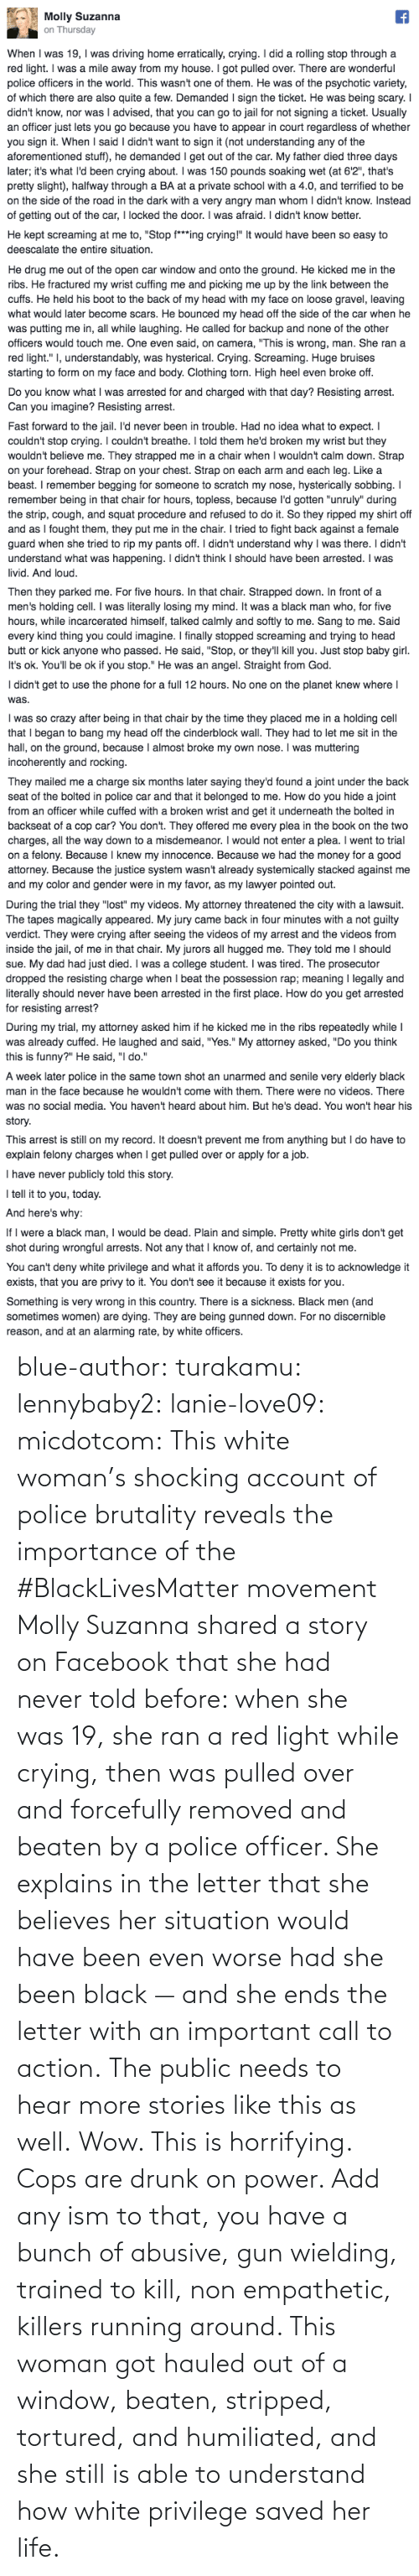 police brutality: blue-author: turakamu:  lennybaby2:  lanie-love09:  micdotcom:  This white woman's shocking account of police brutality reveals the importance of the #BlackLivesMatter movement Molly Suzanna shared a story on Facebook that she had never told before: when she was 19, she ran a red light while crying, then was pulled over and forcefully removed and beaten by a police officer. She explains in the letter that she believes her situation would have been even worse had she been black — and she ends the letter with an important call to action.  The public needs to hear more stories like this as well.  Wow. This is horrifying.  Cops are drunk on power. Add any ism to that, you have a bunch of abusive, gun wielding, trained to kill, non empathetic, killers running around.    This woman got hauled out of a window, beaten, stripped, tortured, and humiliated, and she still is able to understand how white privilege saved her life.